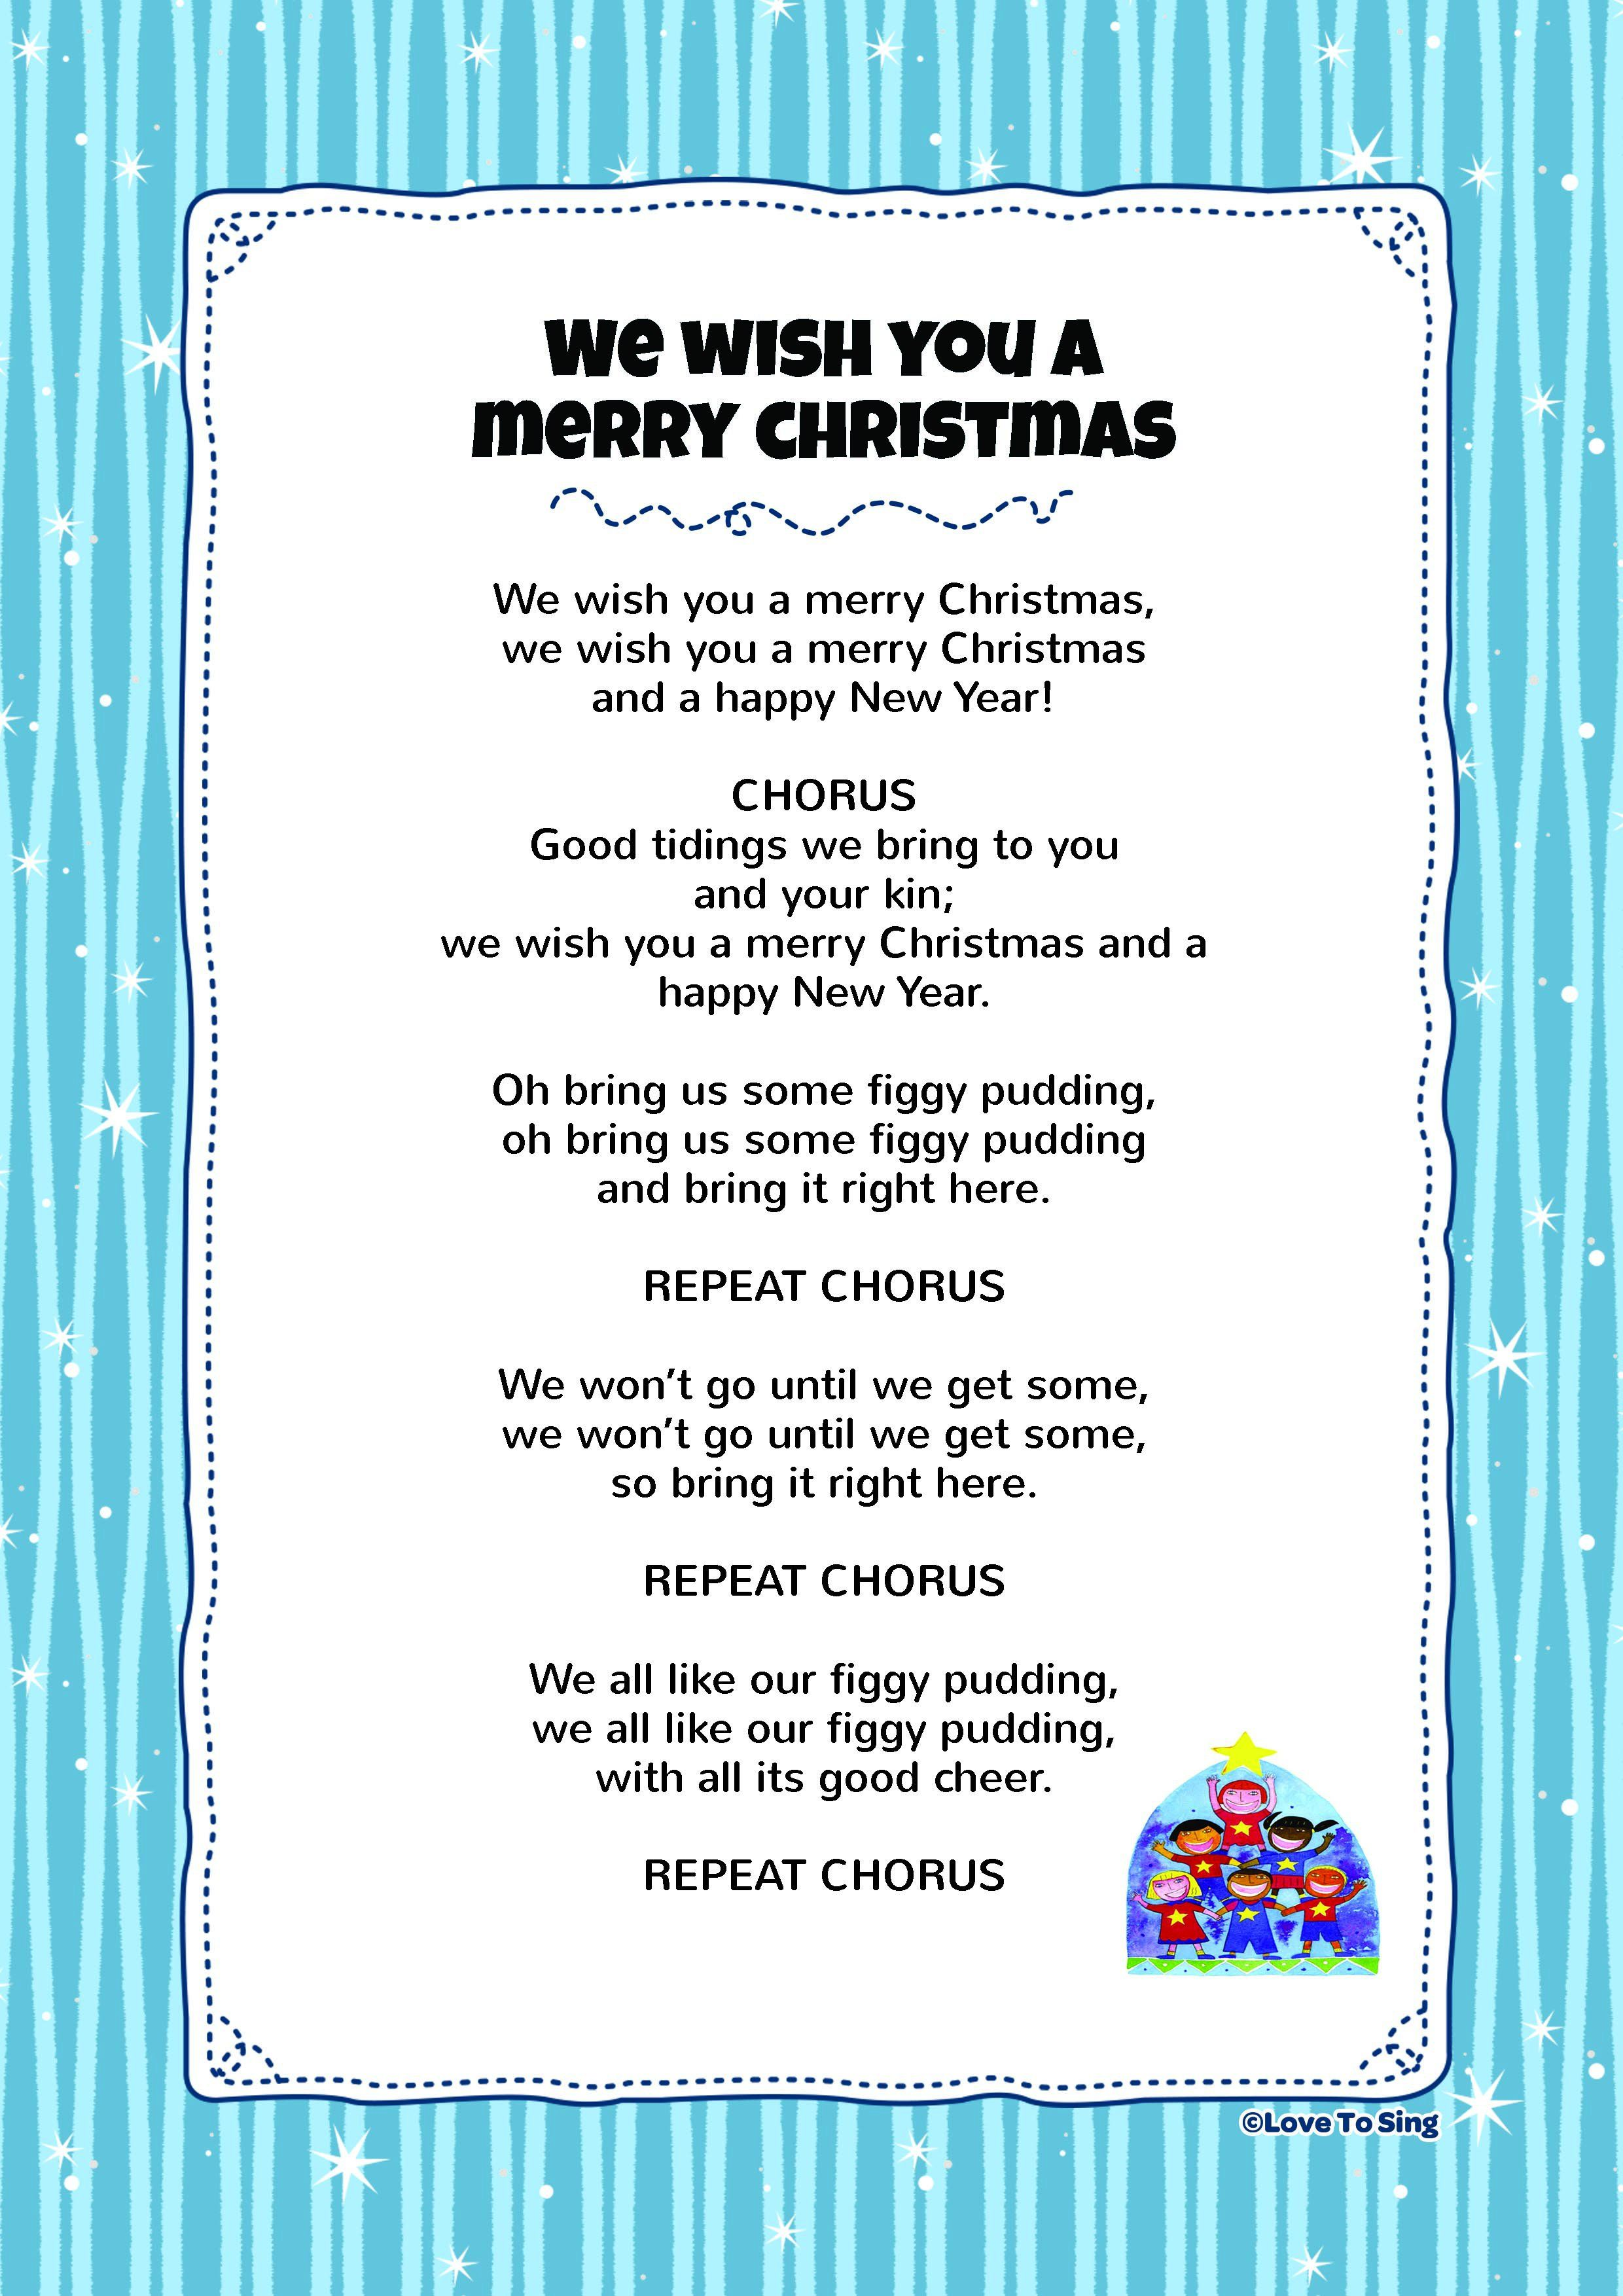 A collection of popular Christmas songs for BIG and little kids